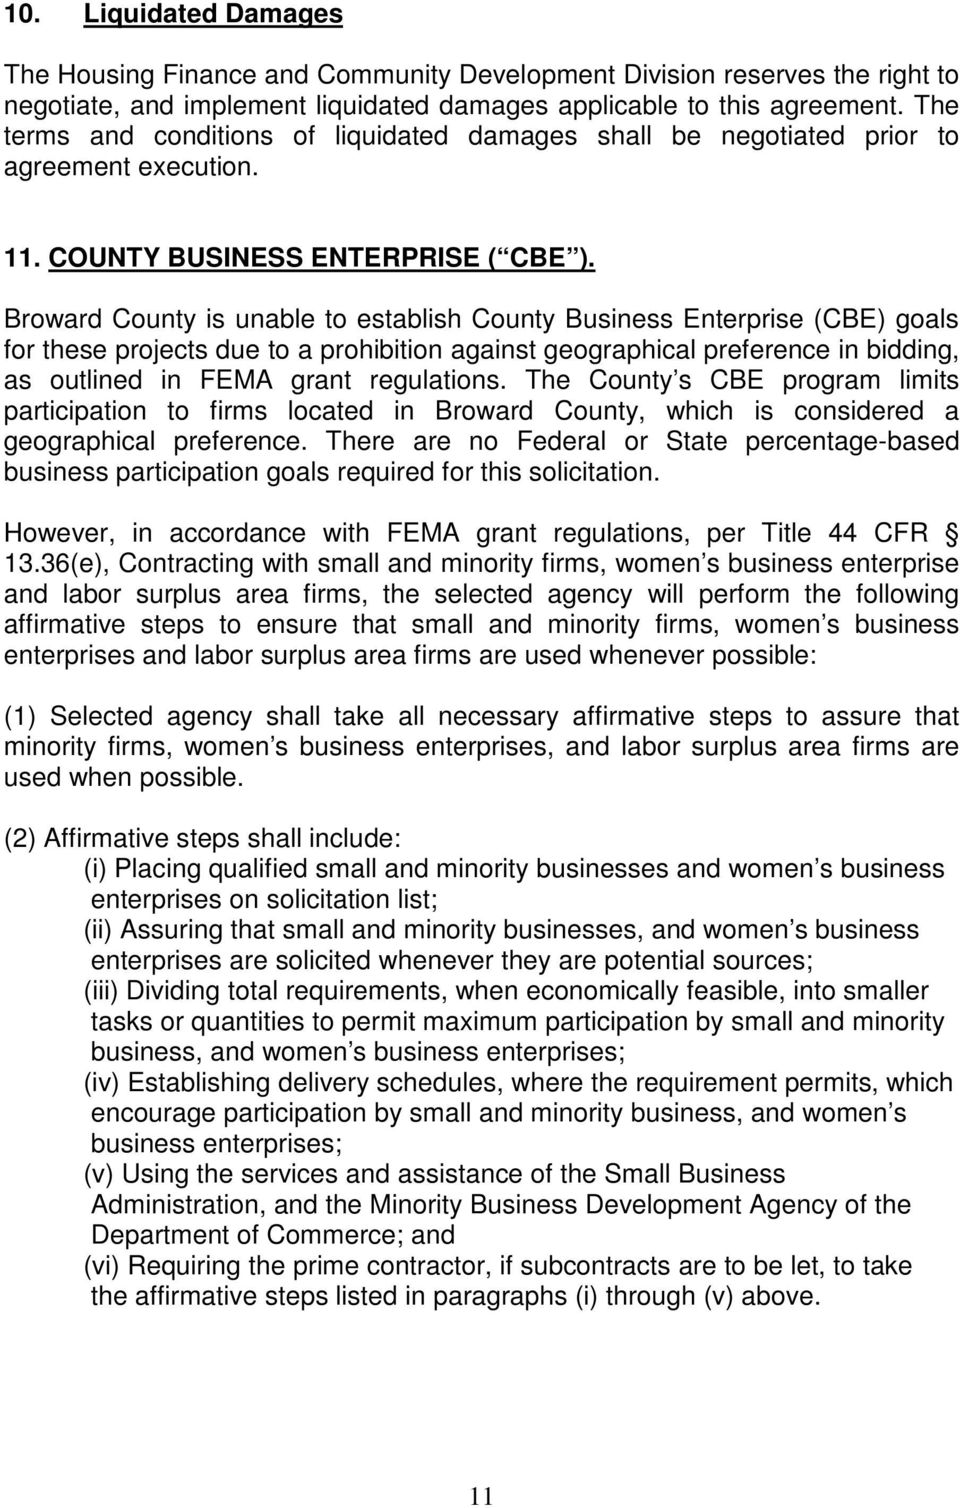 Broward County is unable to establish County Business Enterprise (CBE) goals for these projects due to a prohibition against geographical preference in bidding, as outlined in FEMA grant regulations.